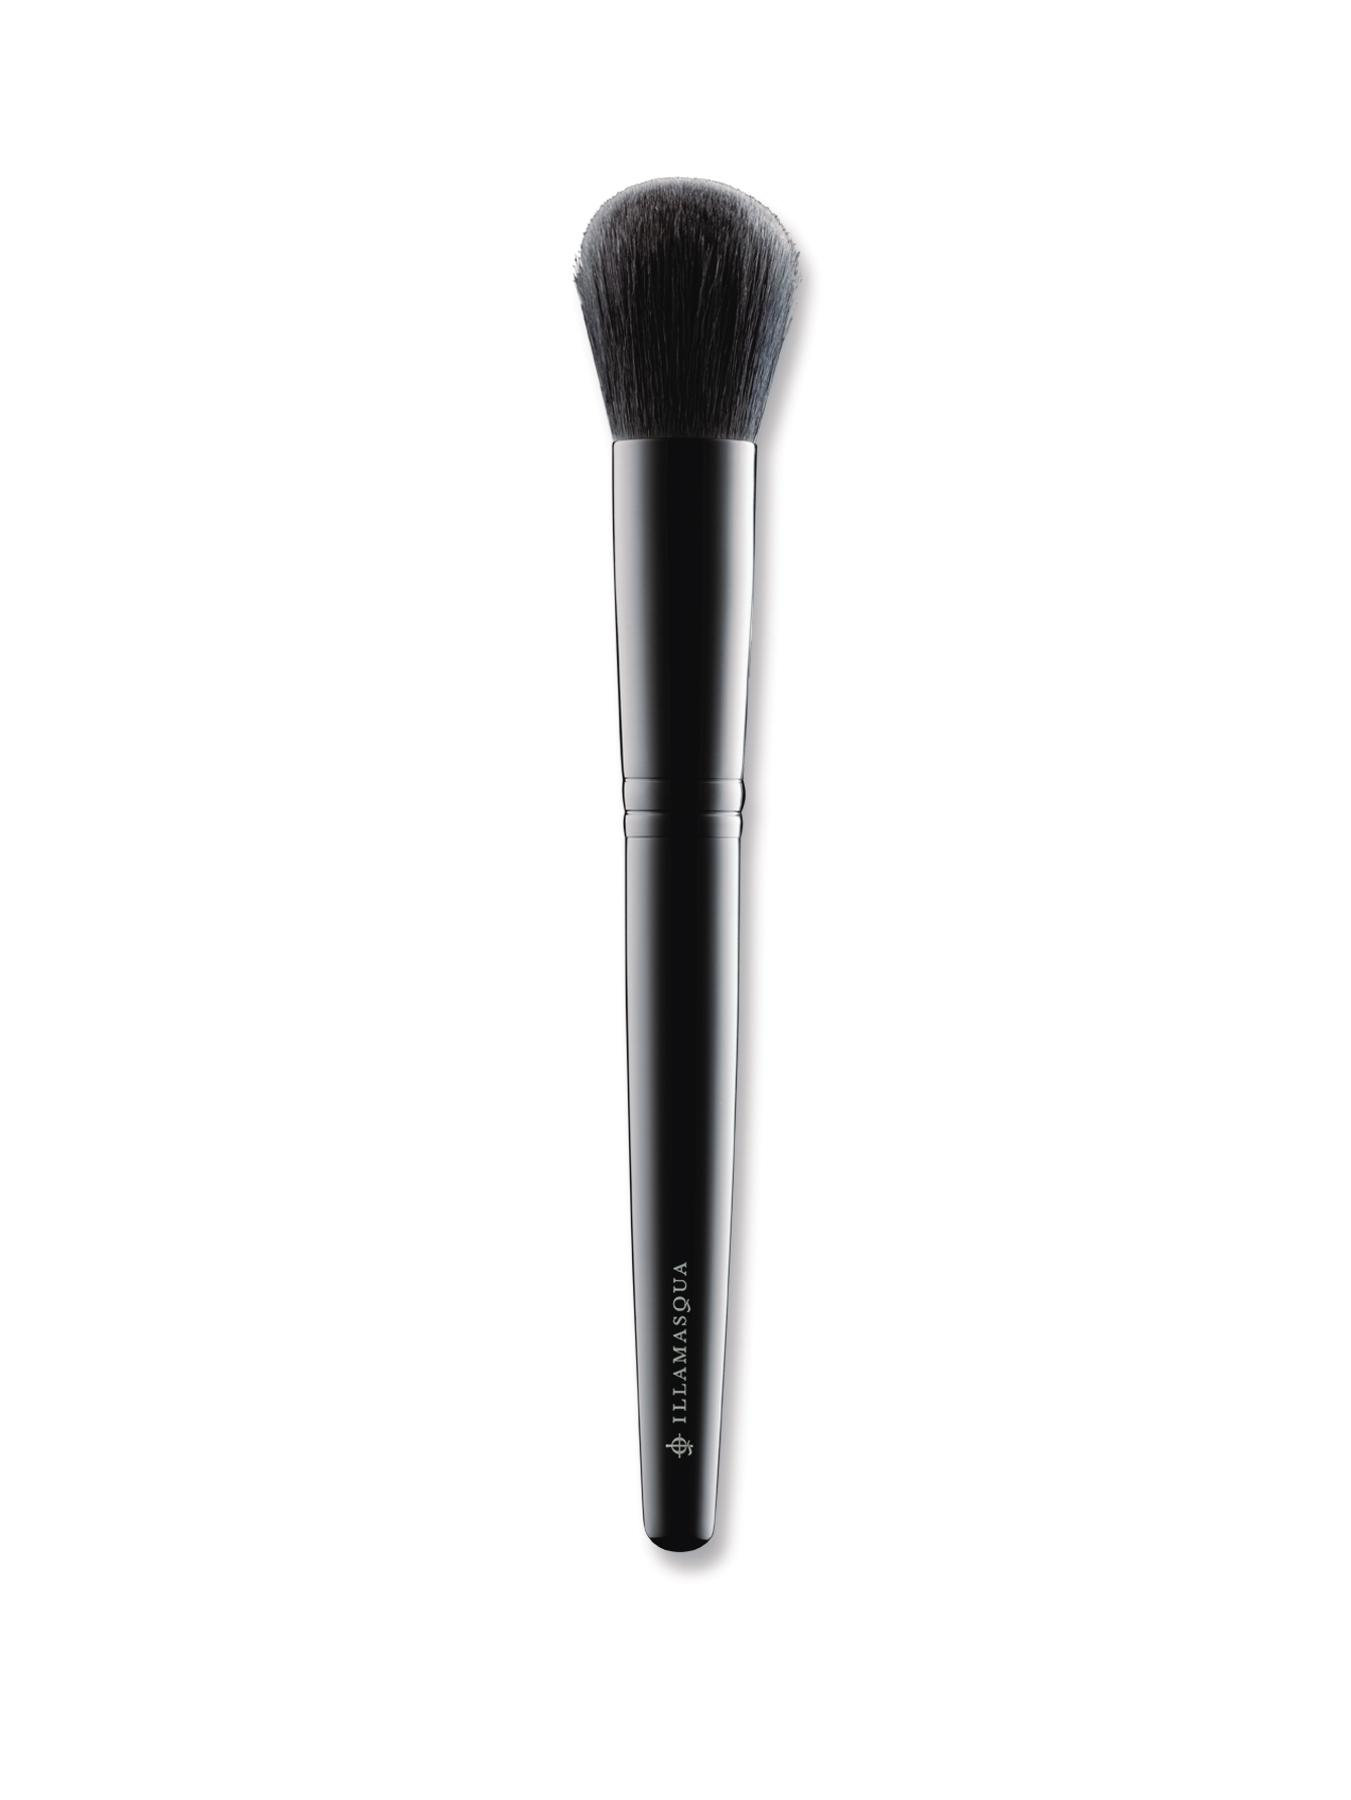 Illamasqua Blusher Brush 1